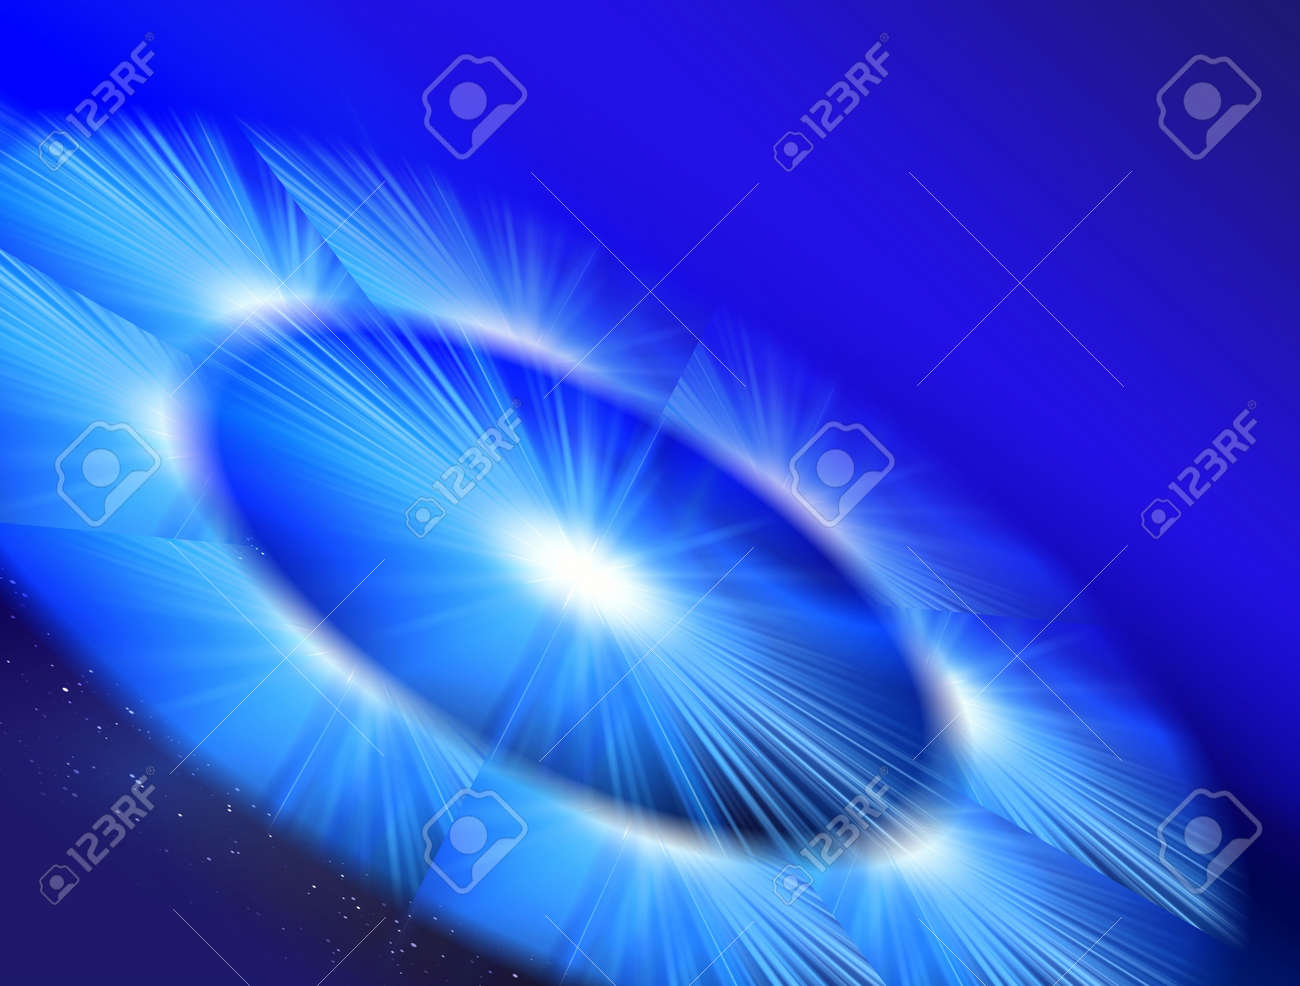 Abstraction Background for various design artwork Stock Photo - 4639771